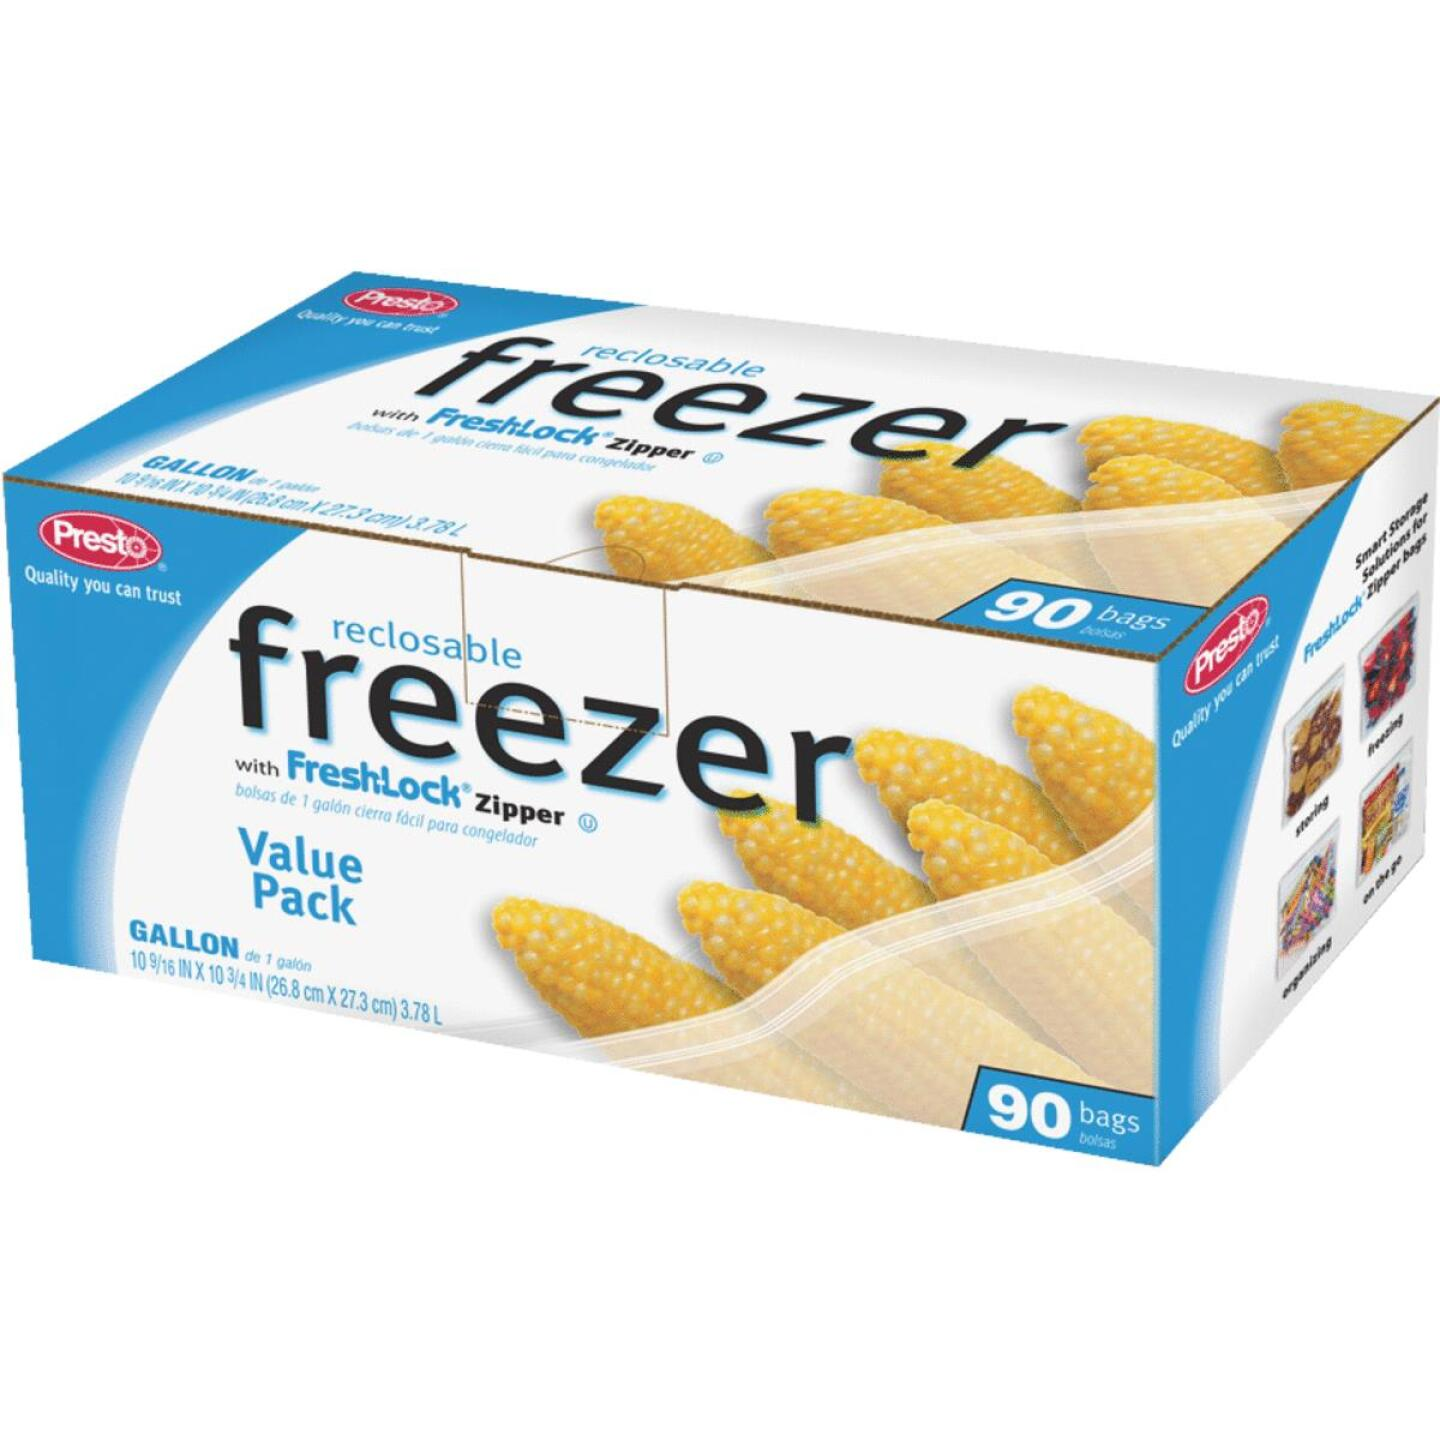 Presto 1 Gal. Reclosable Freezer Bag (90 Count) Image 1